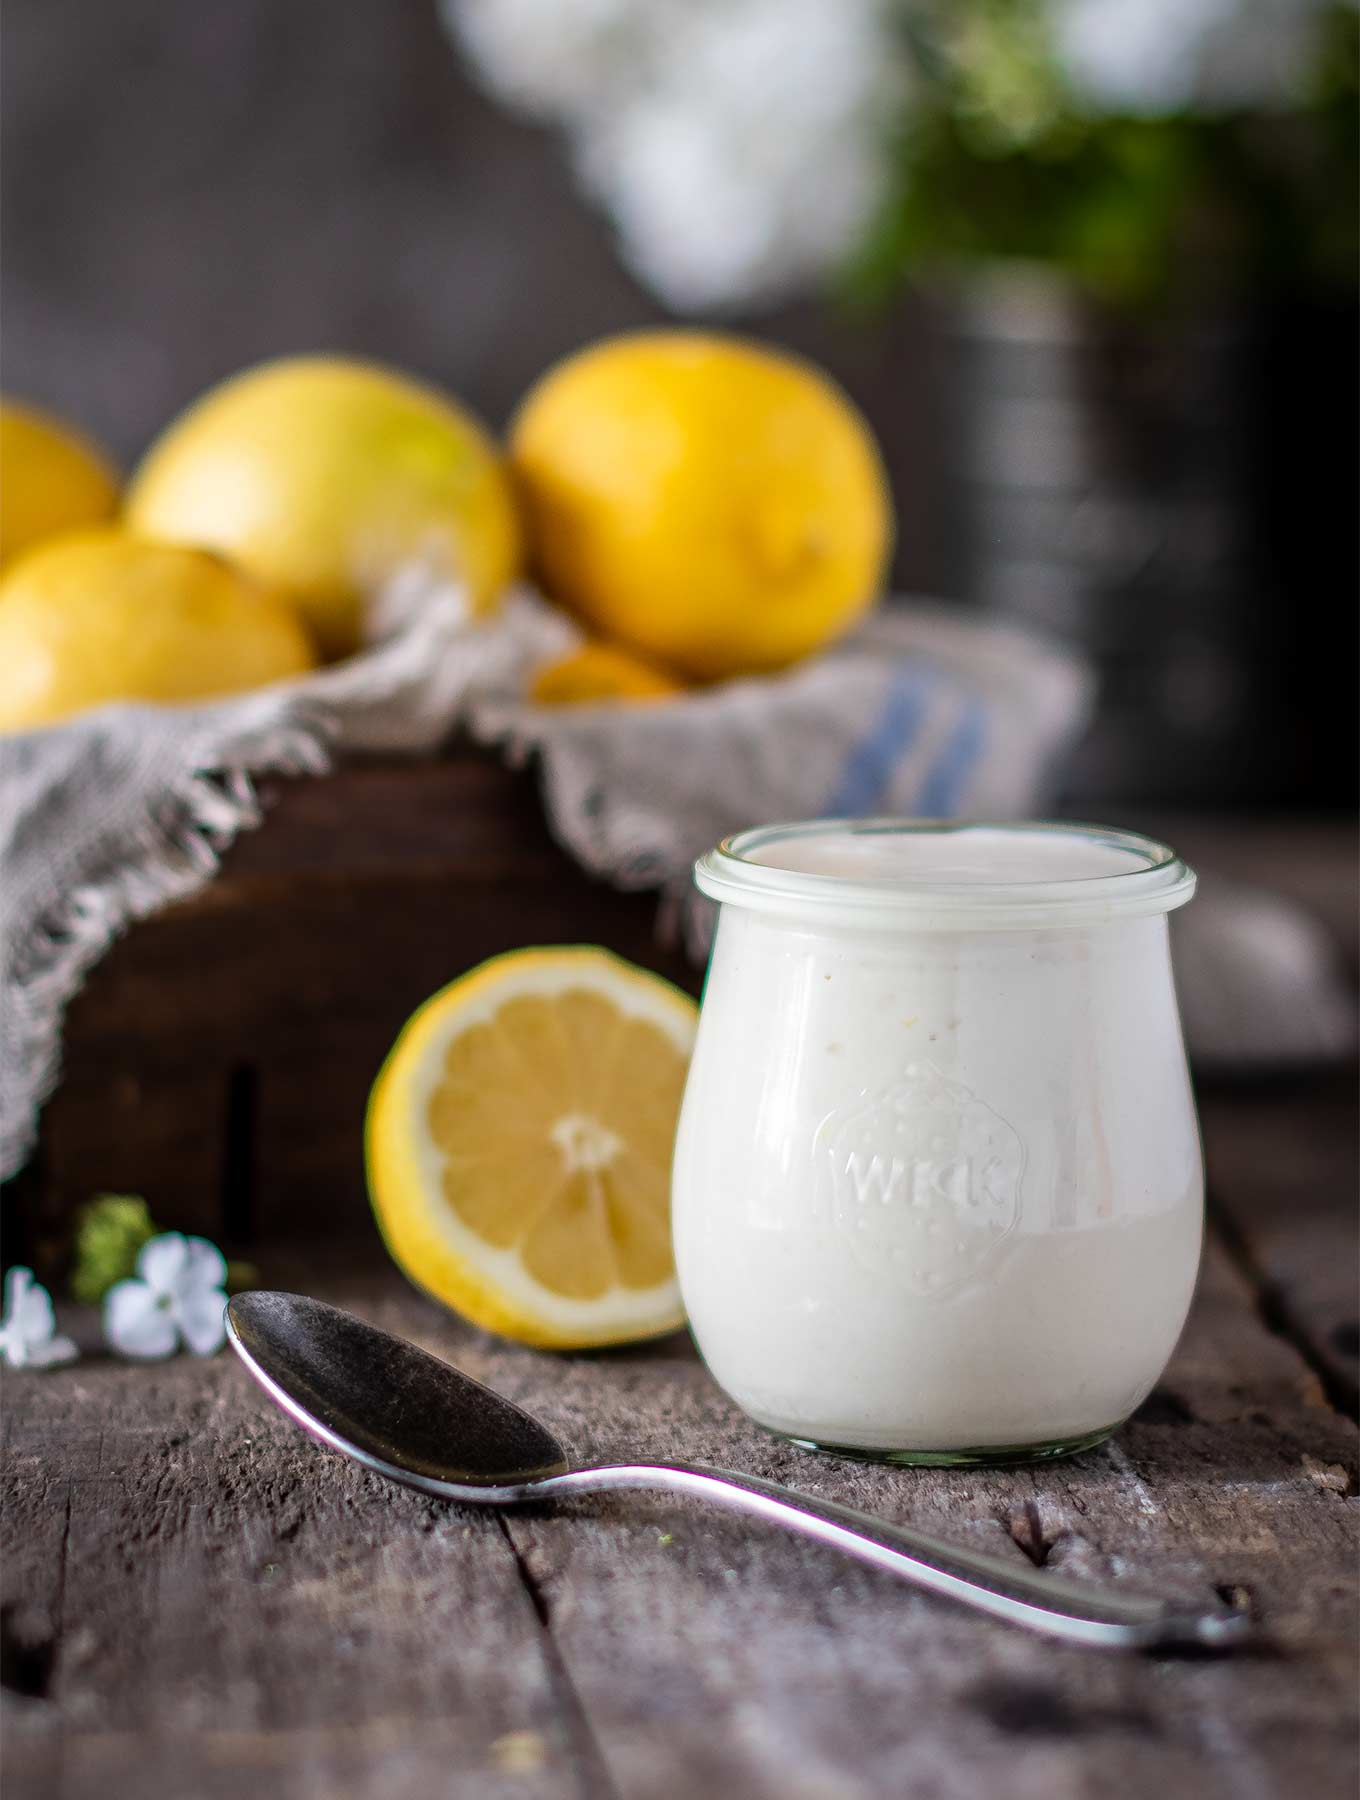 Jar of lemon aioli with fresh lemons on wood board